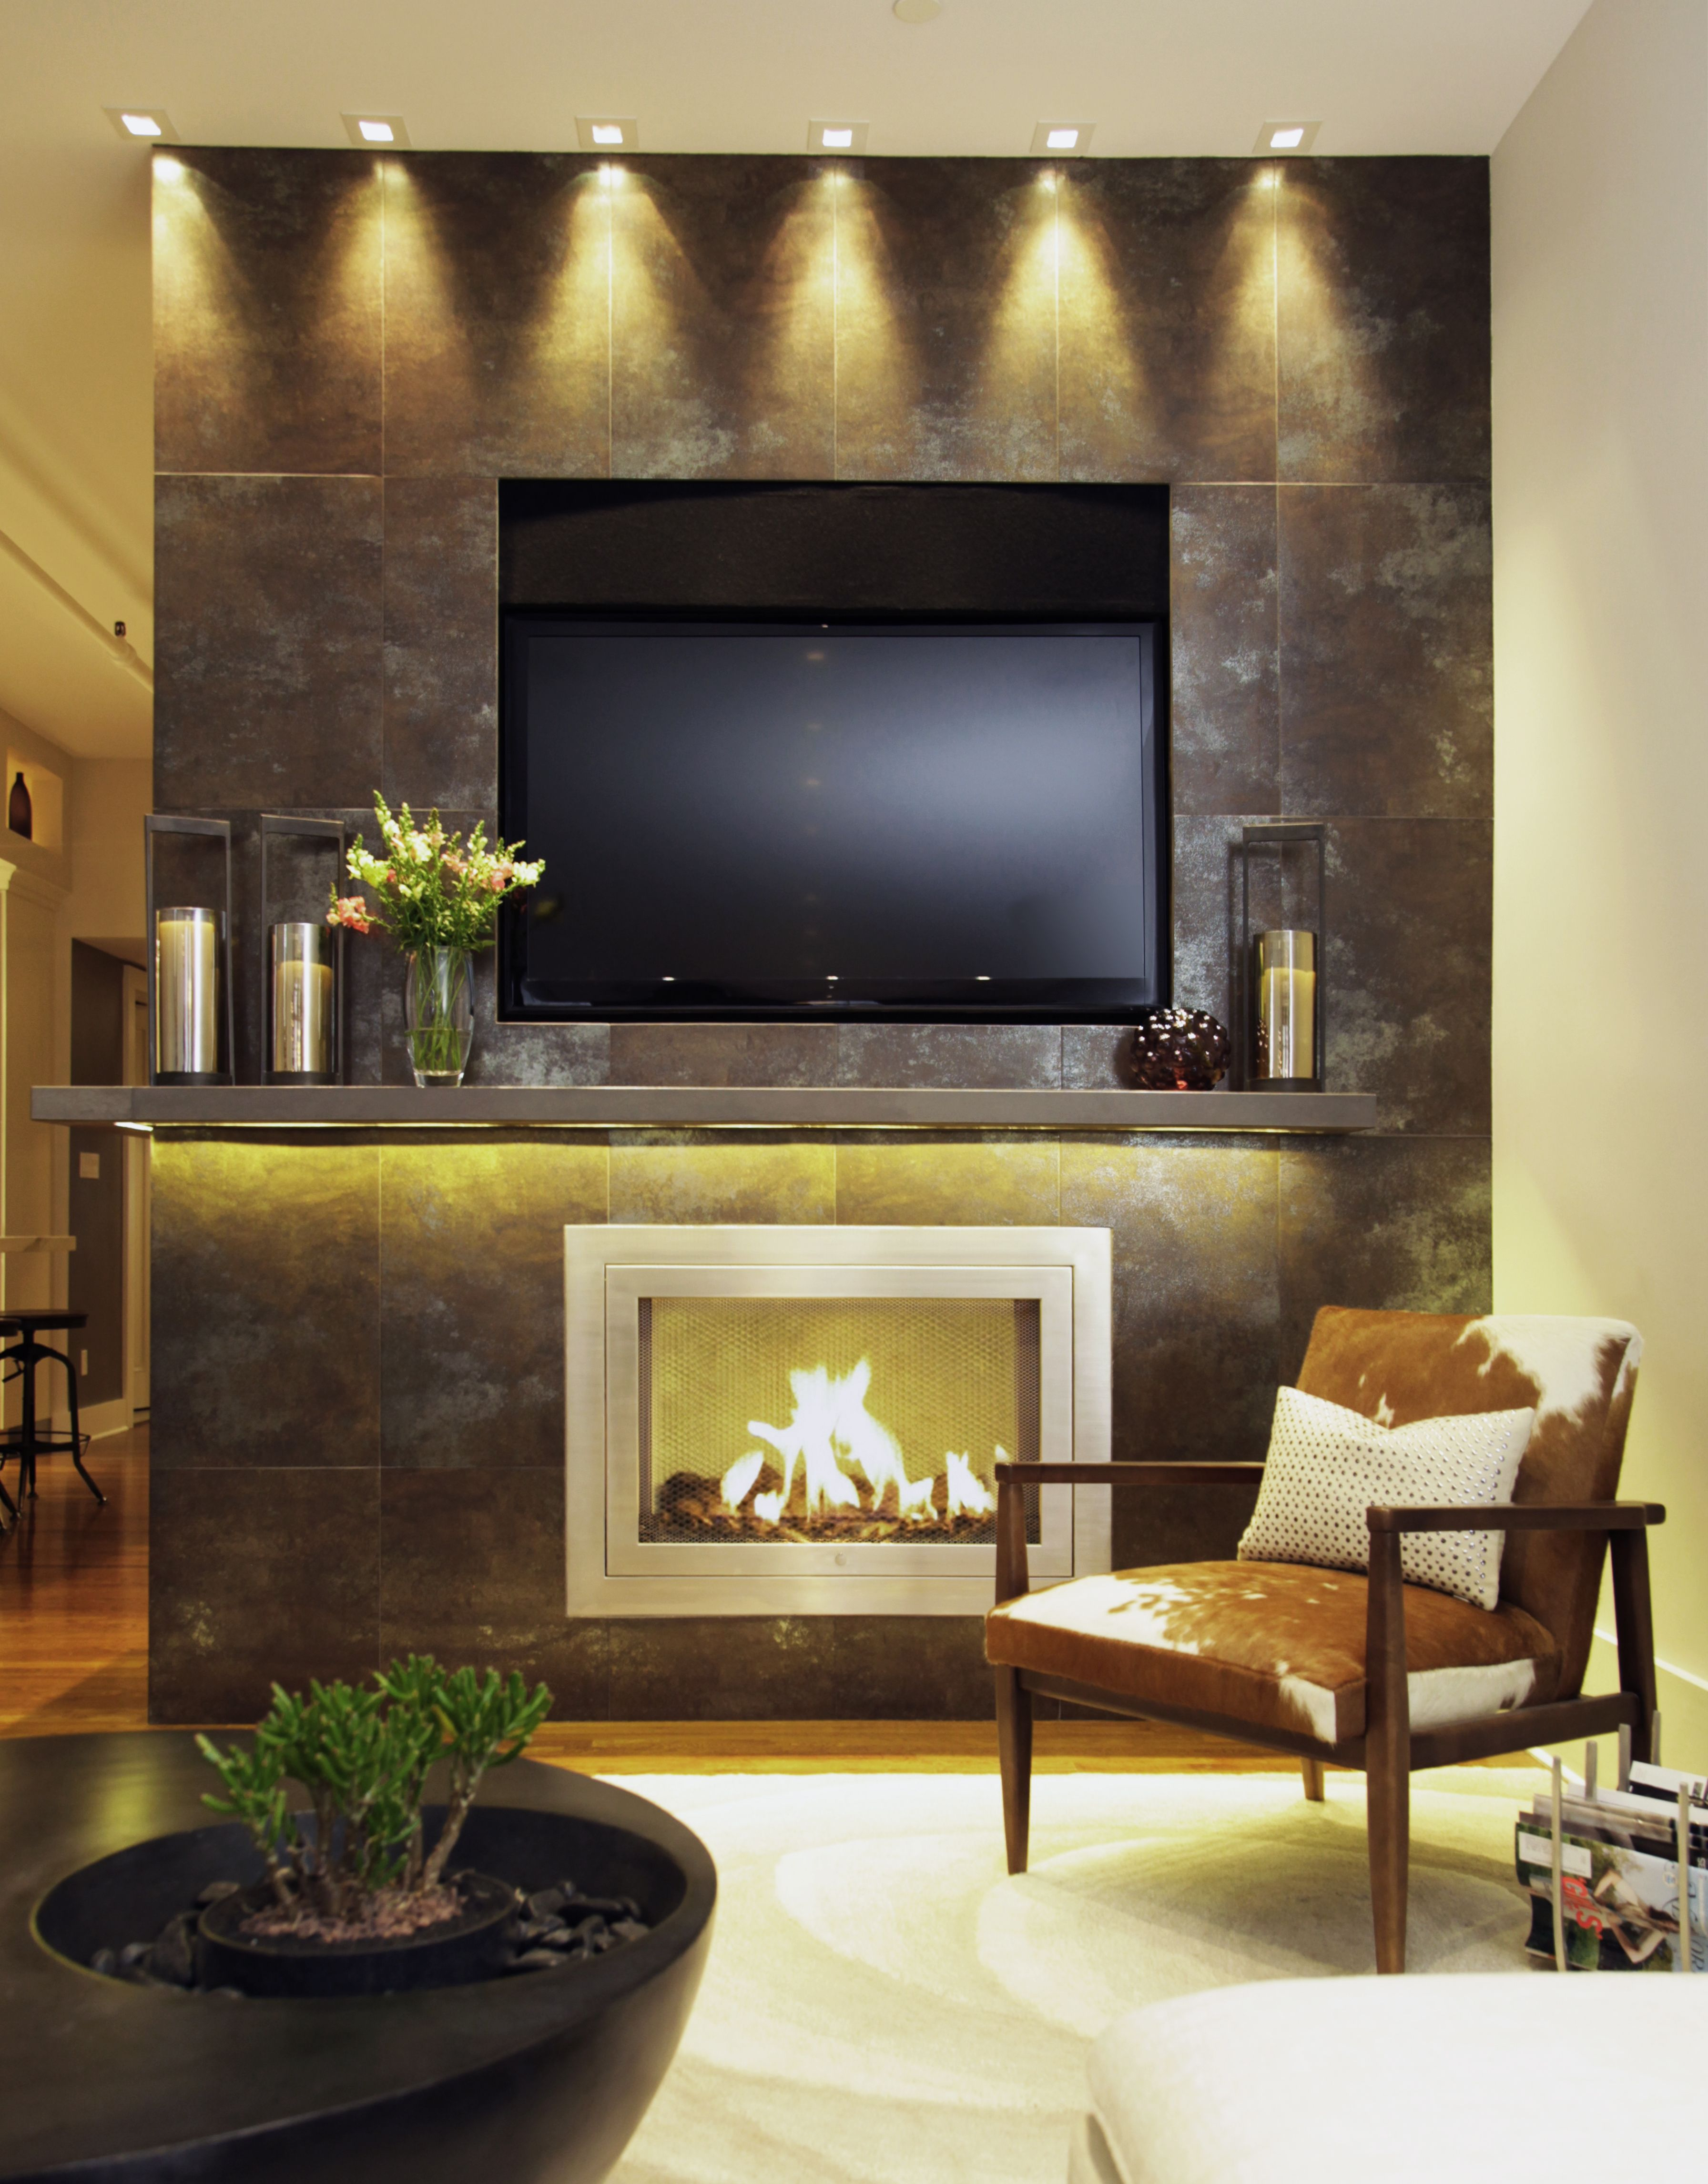 Hearthcabinet Ventless Fireplaces Require No Chimney